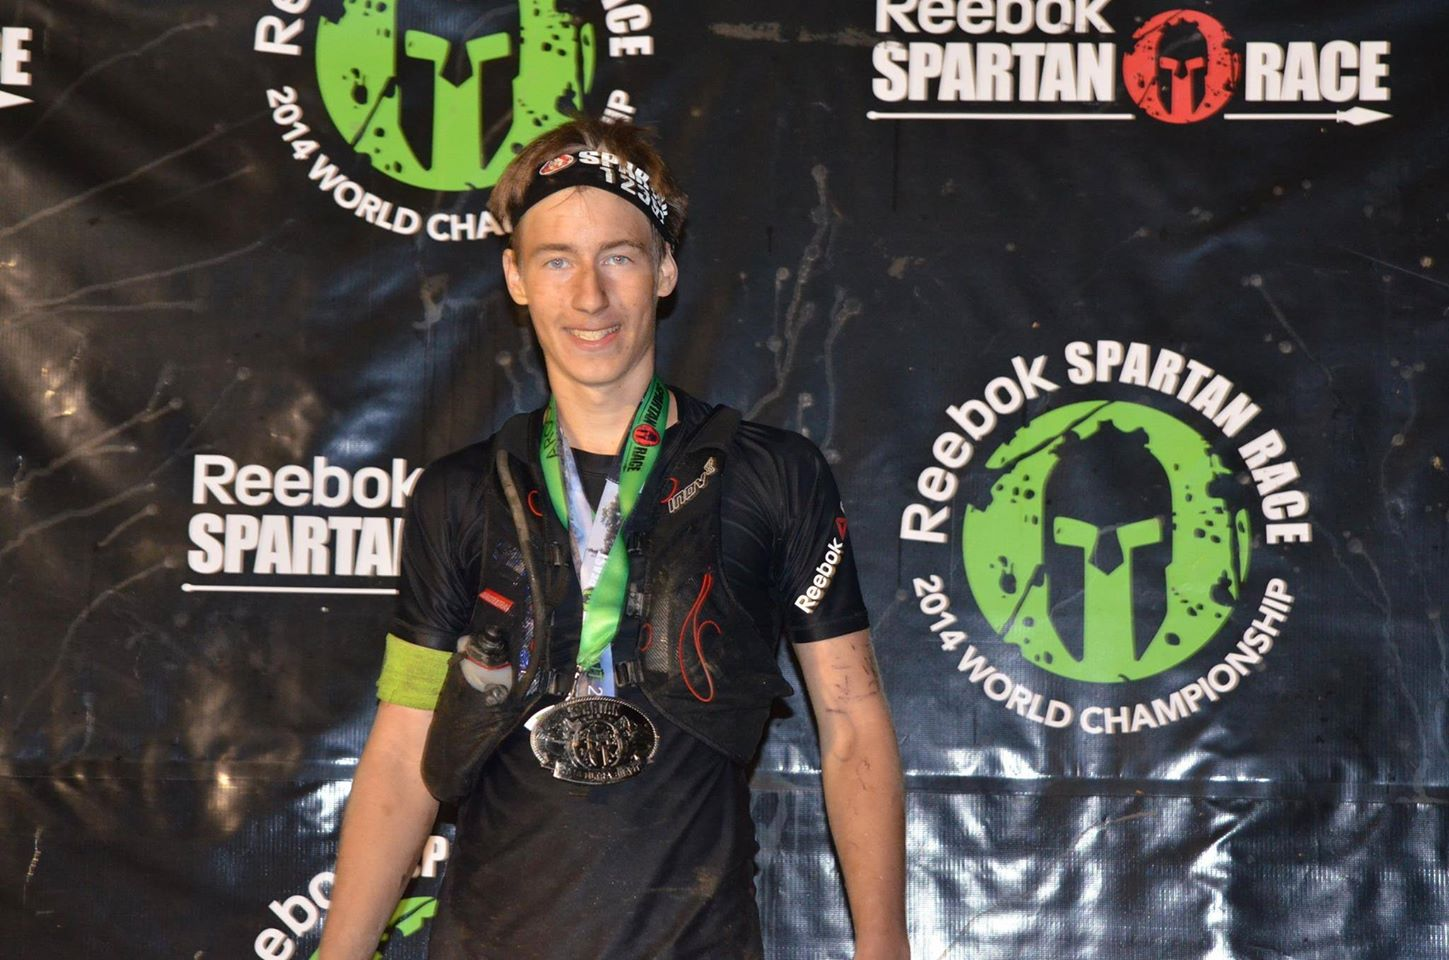 17yr Old Completes Spartan Race World Championship And